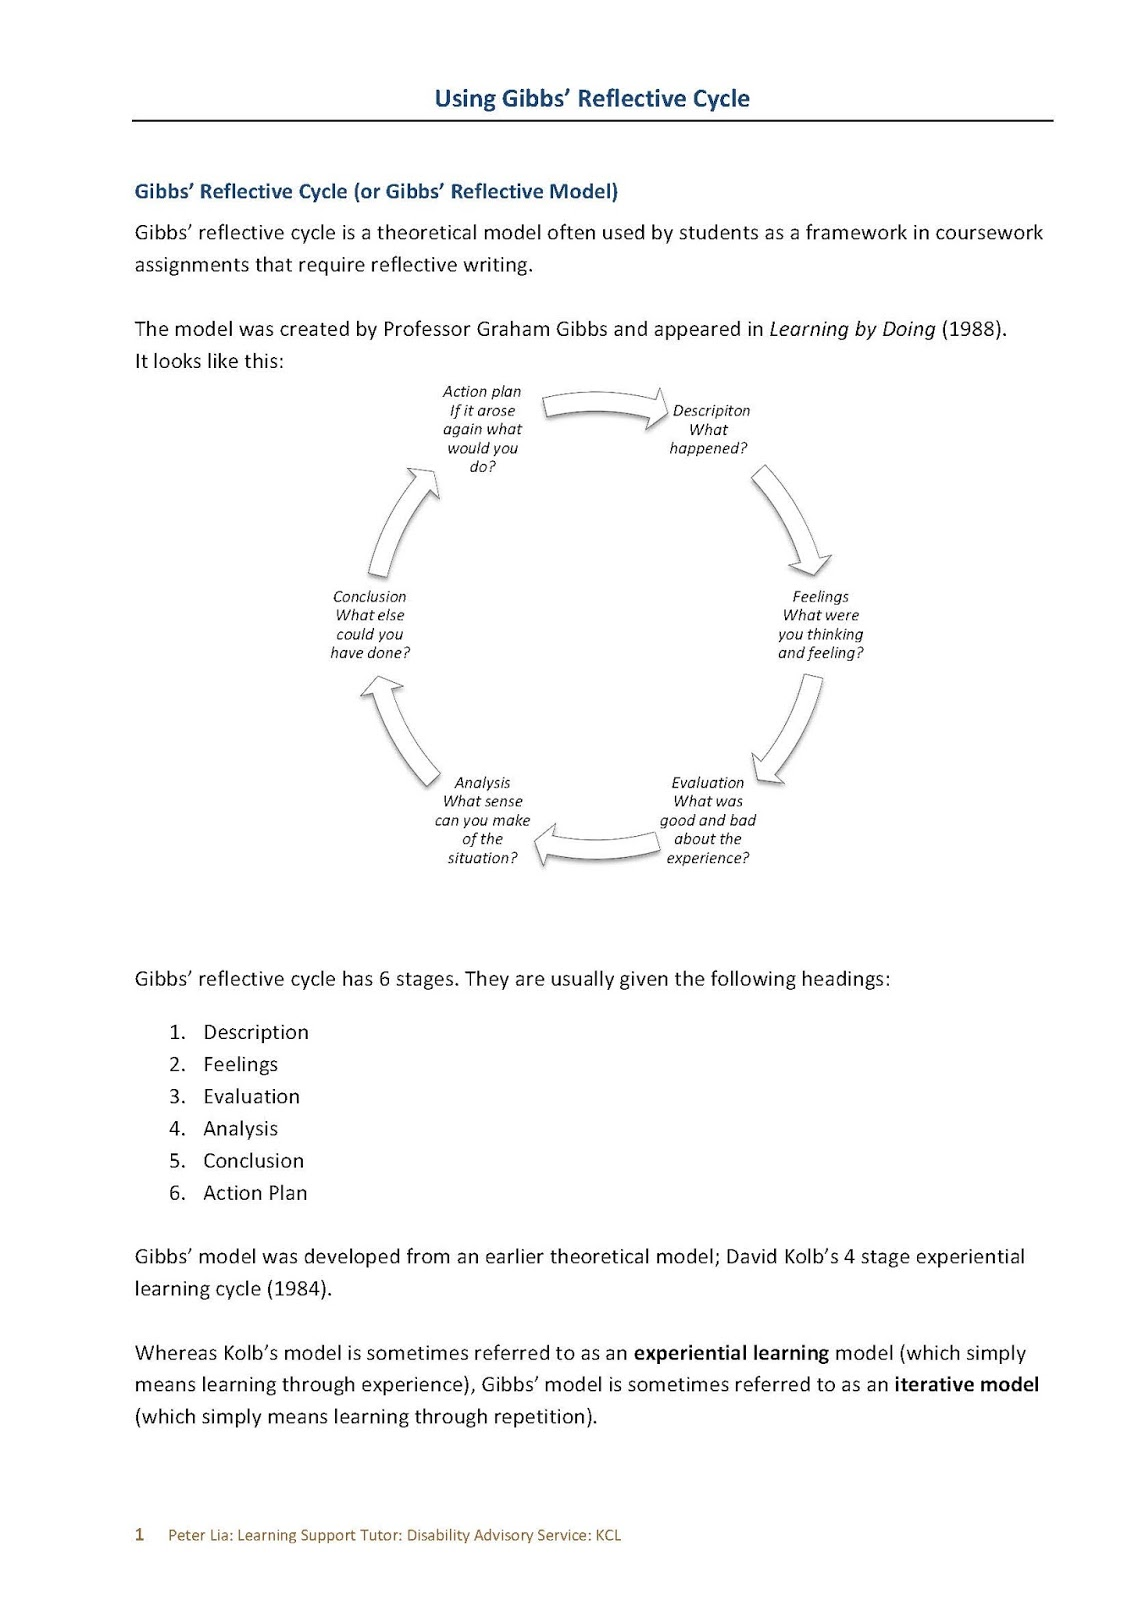 gibbs reflective model template - paula nottingham 2015